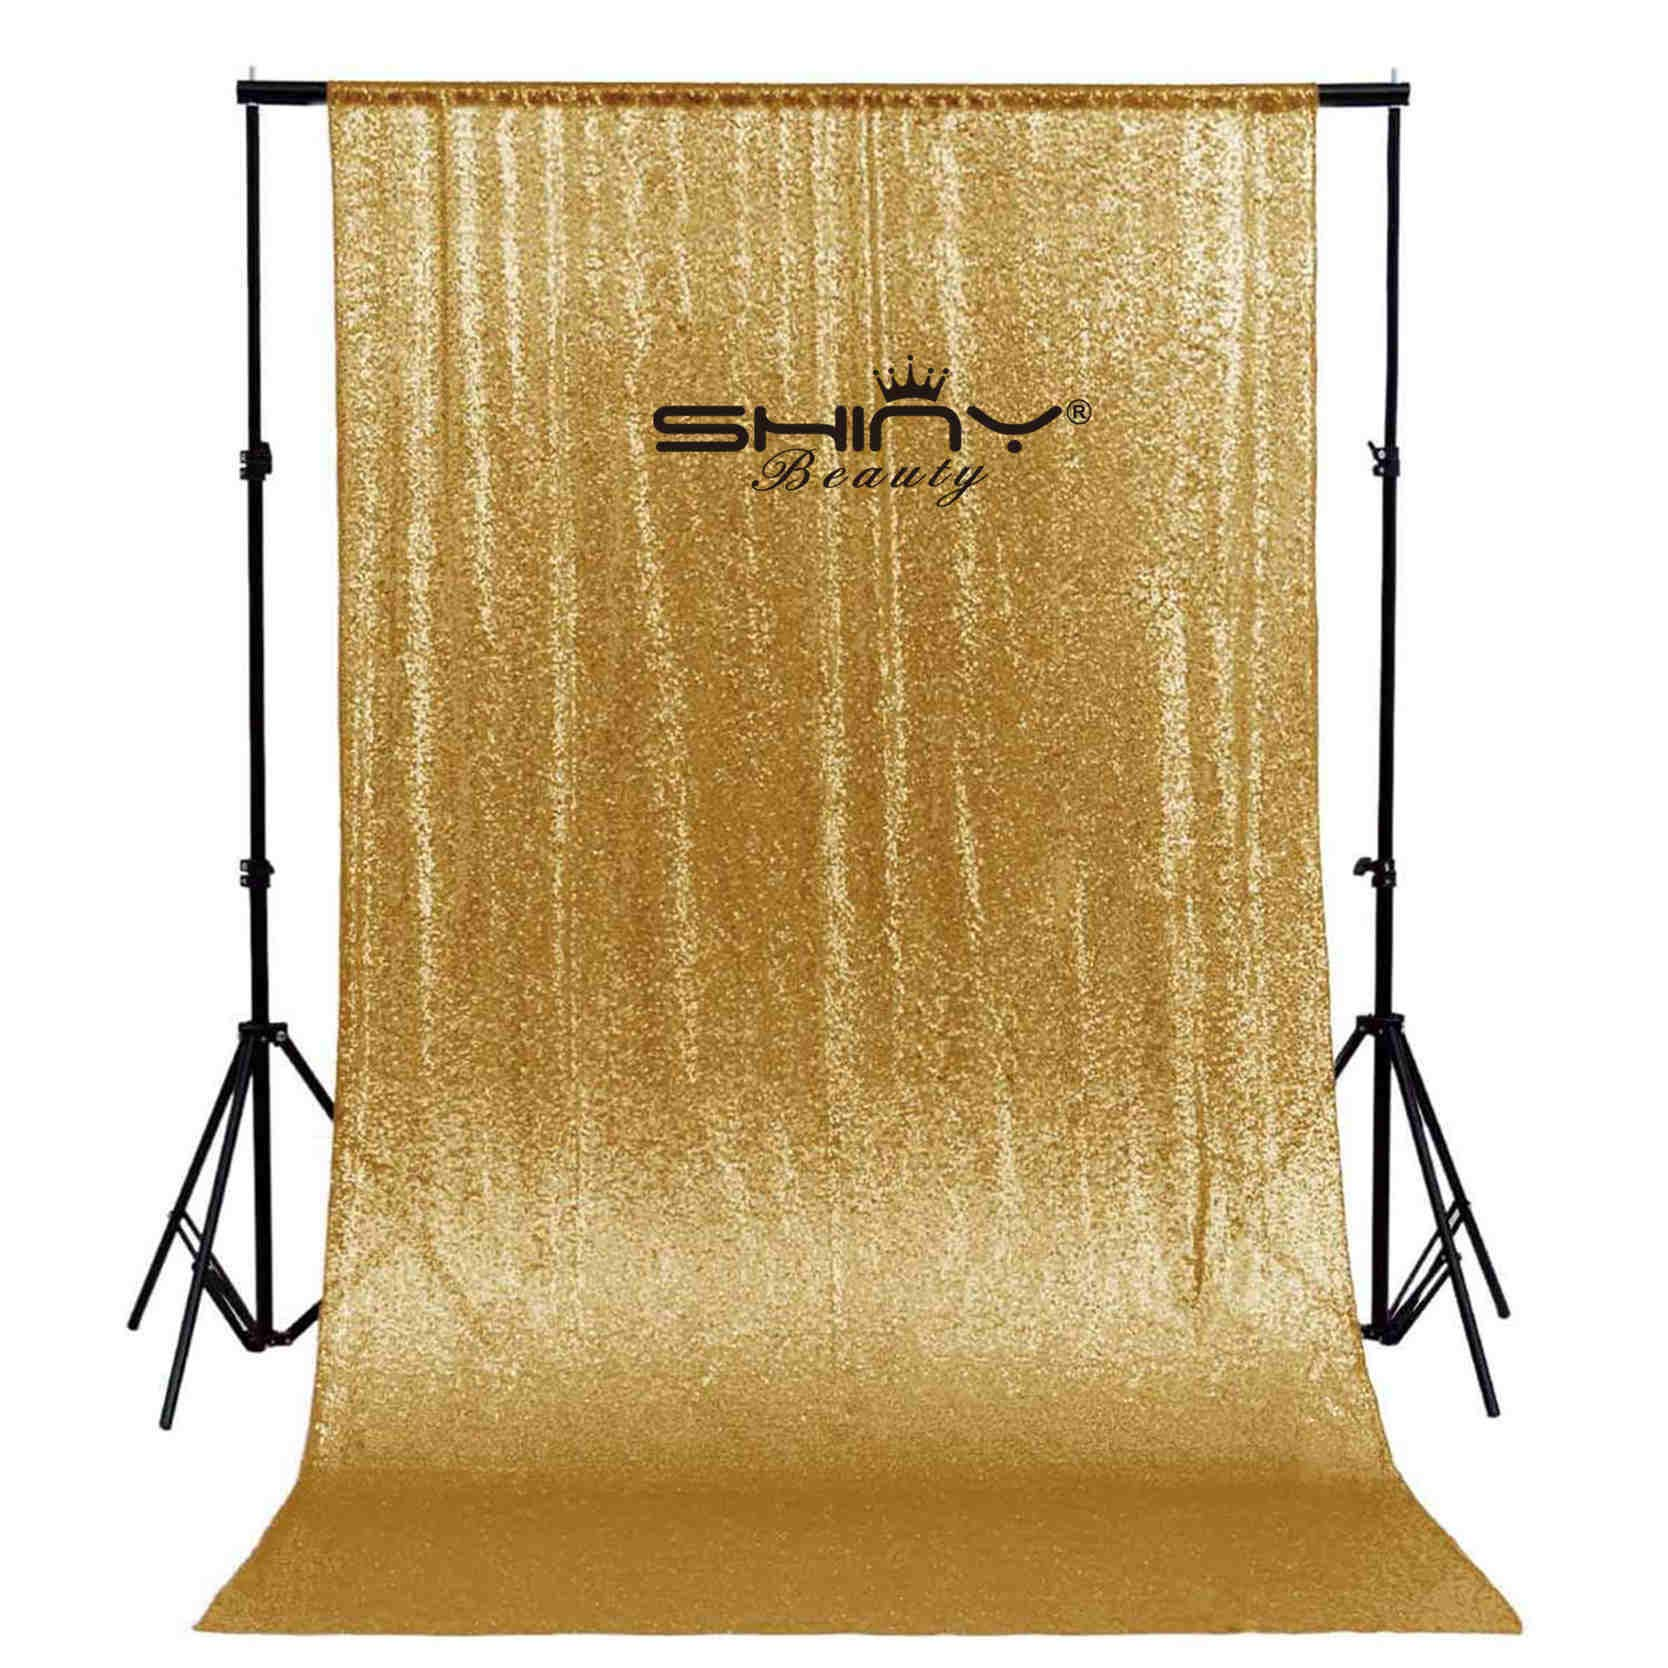 ShinyBeauty Sequin Backdrop 10FTx10FT-Gold,Sequin Curtain for Backdrop Photo Booth Party Props Glitter Sequin Fabric Weddig Background (10FTx10FT, Gold)